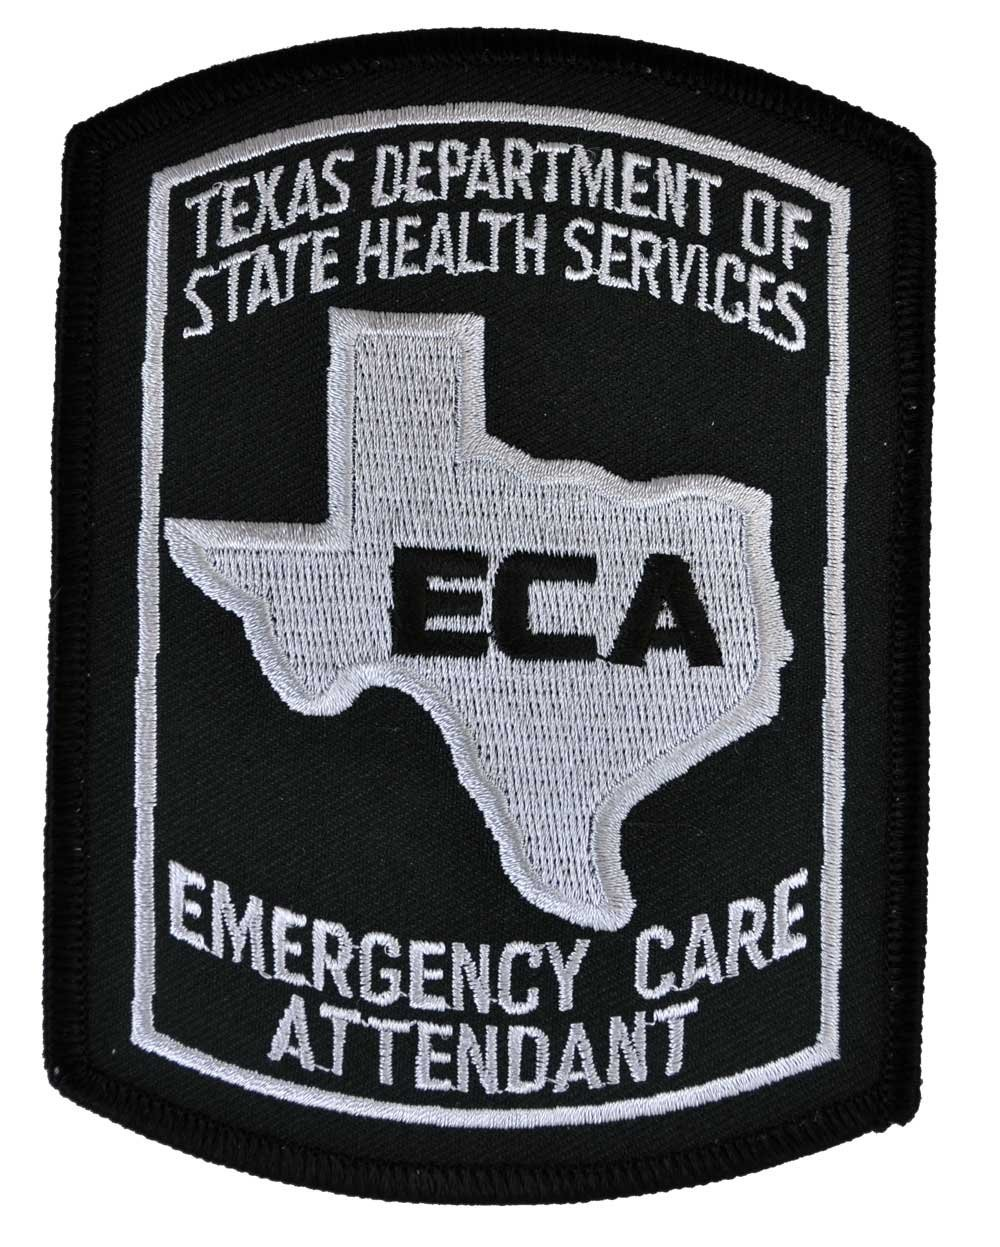 Texas Emergency Care Attendant Patch - Black and Gray